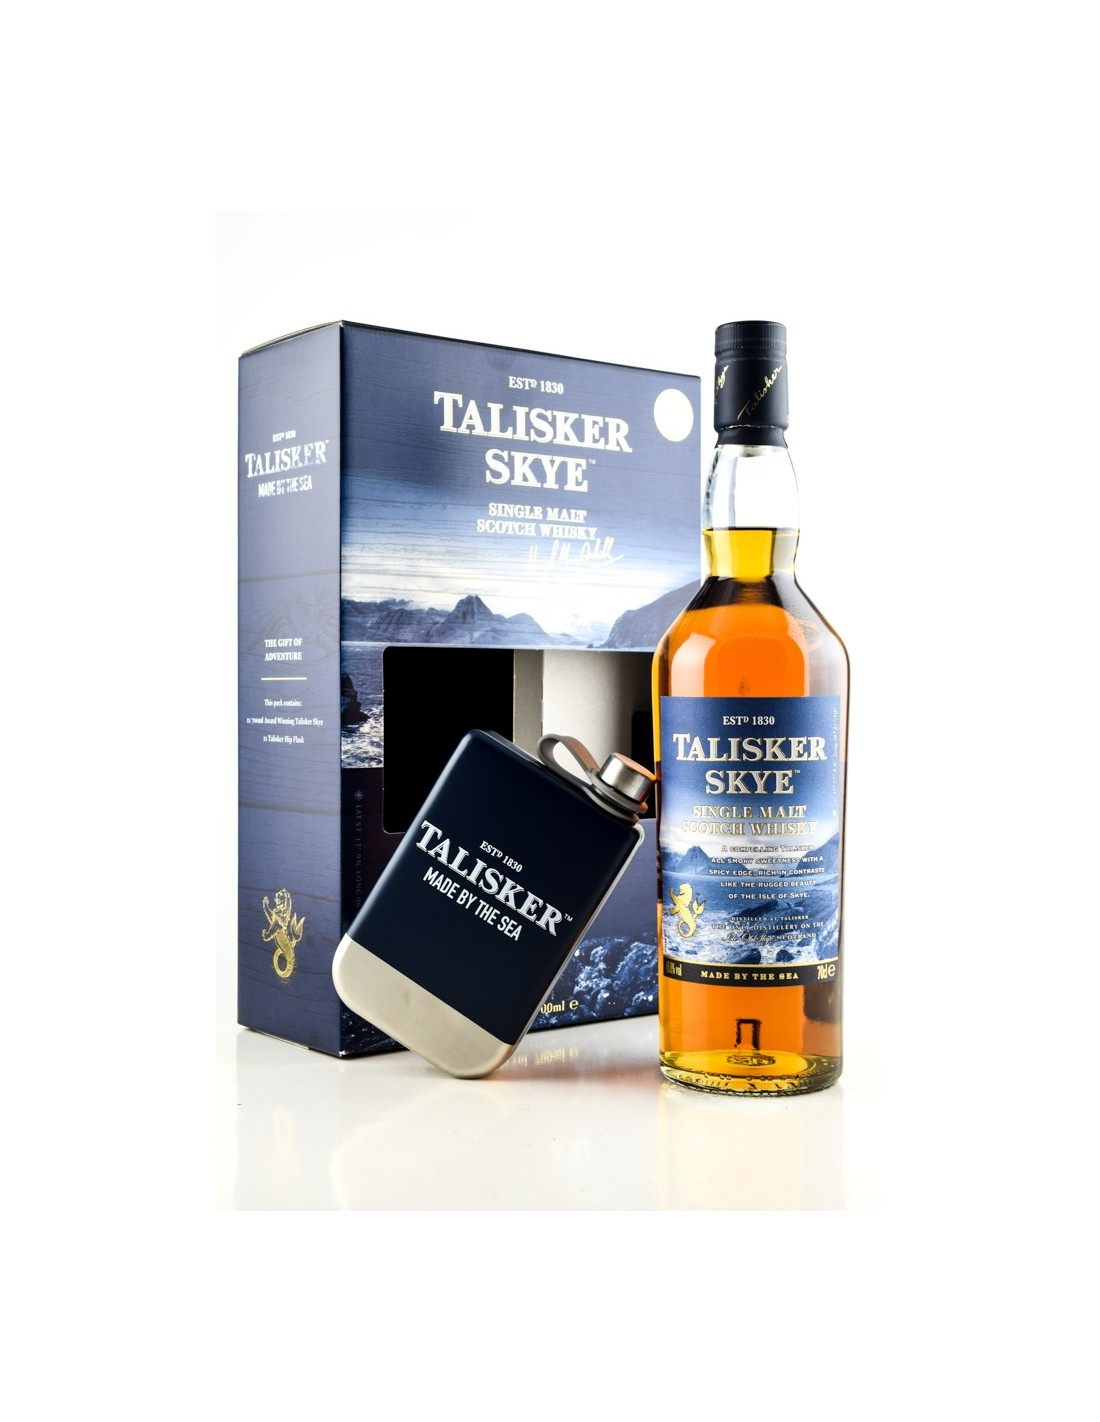 Whisky Single Malt Talisker Skye + butelcuta, 45.8% alc., 0.7L, Scotia